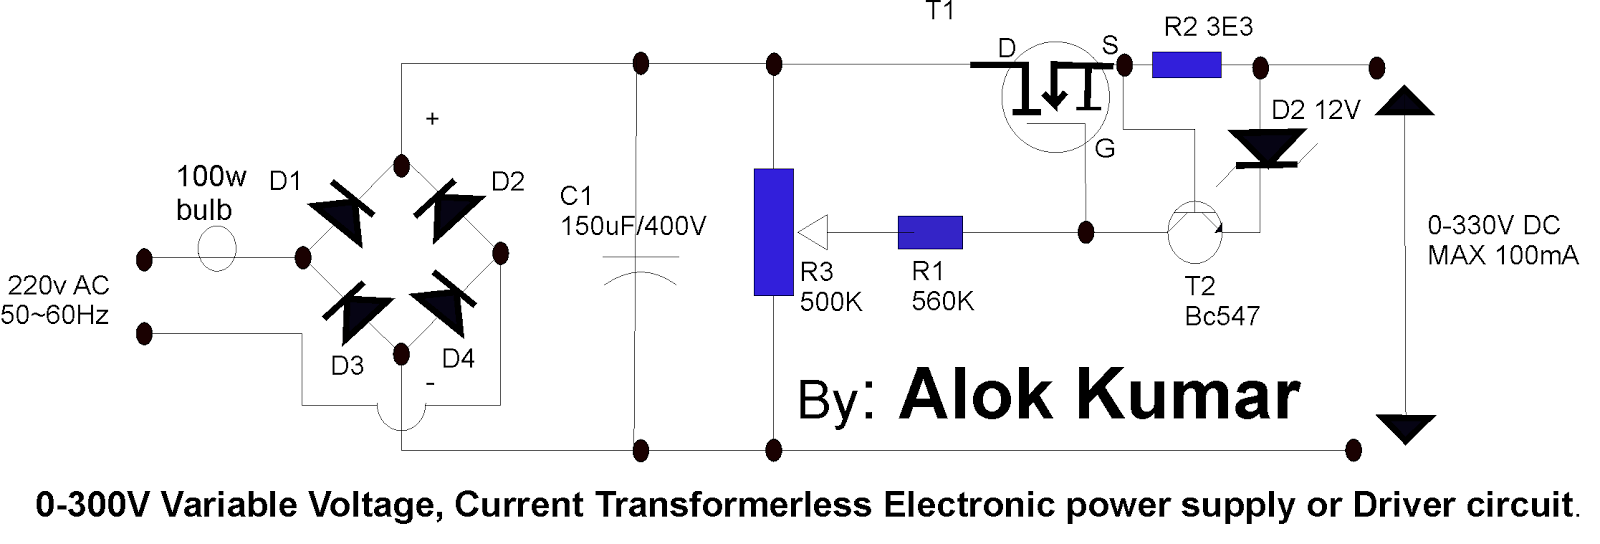 hight resolution of electronic circuits transformerless power supply led drivers battery chargers solar circuits